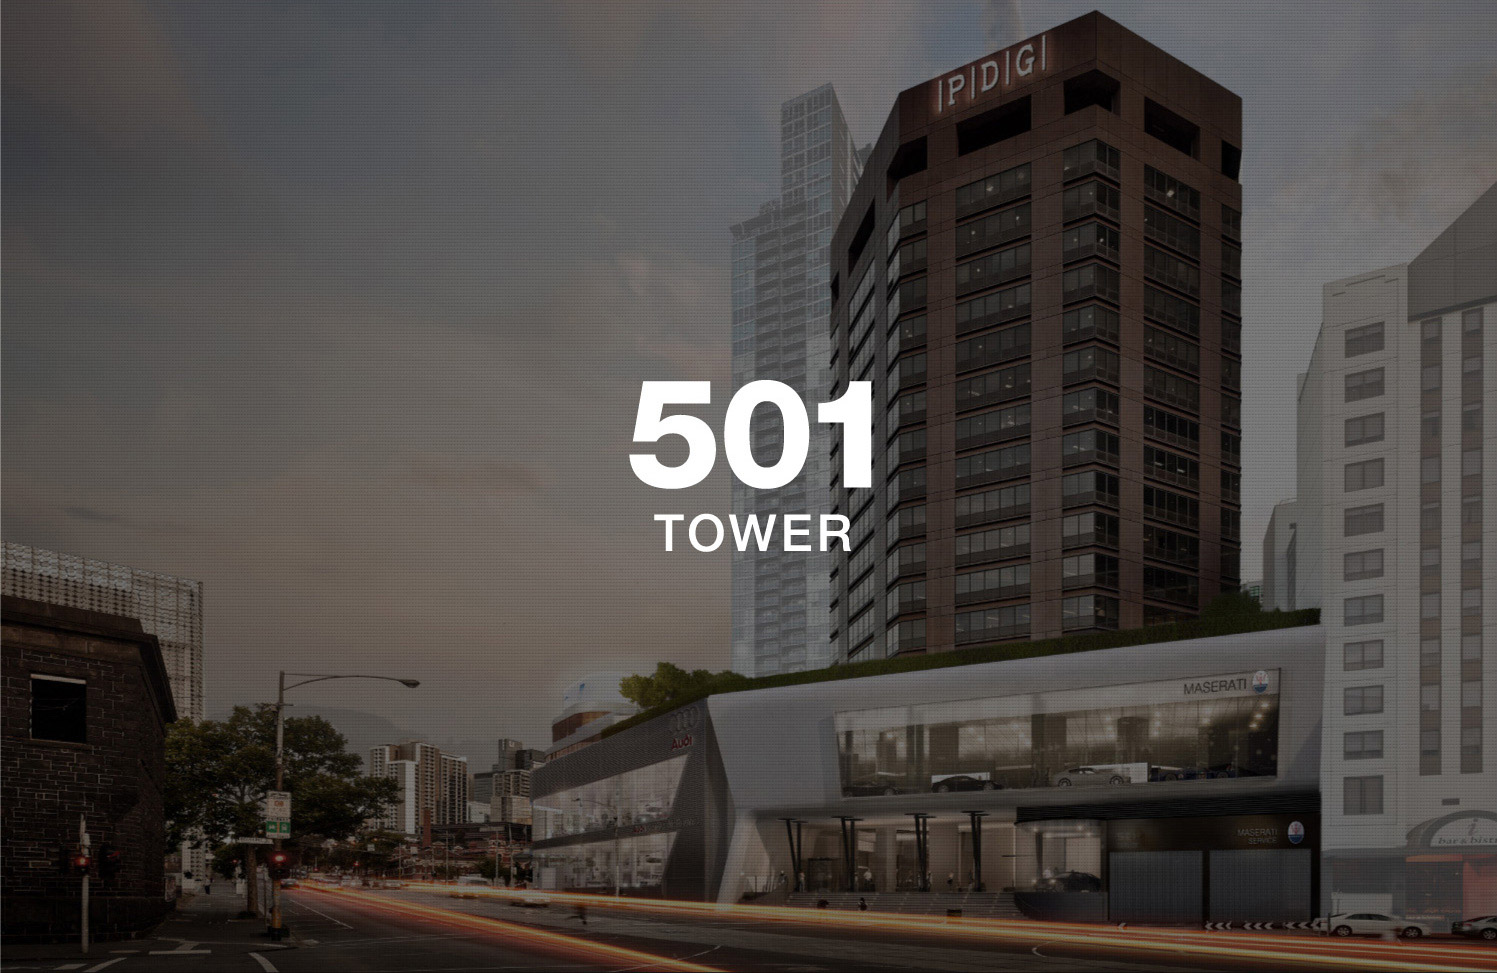 501 Tower